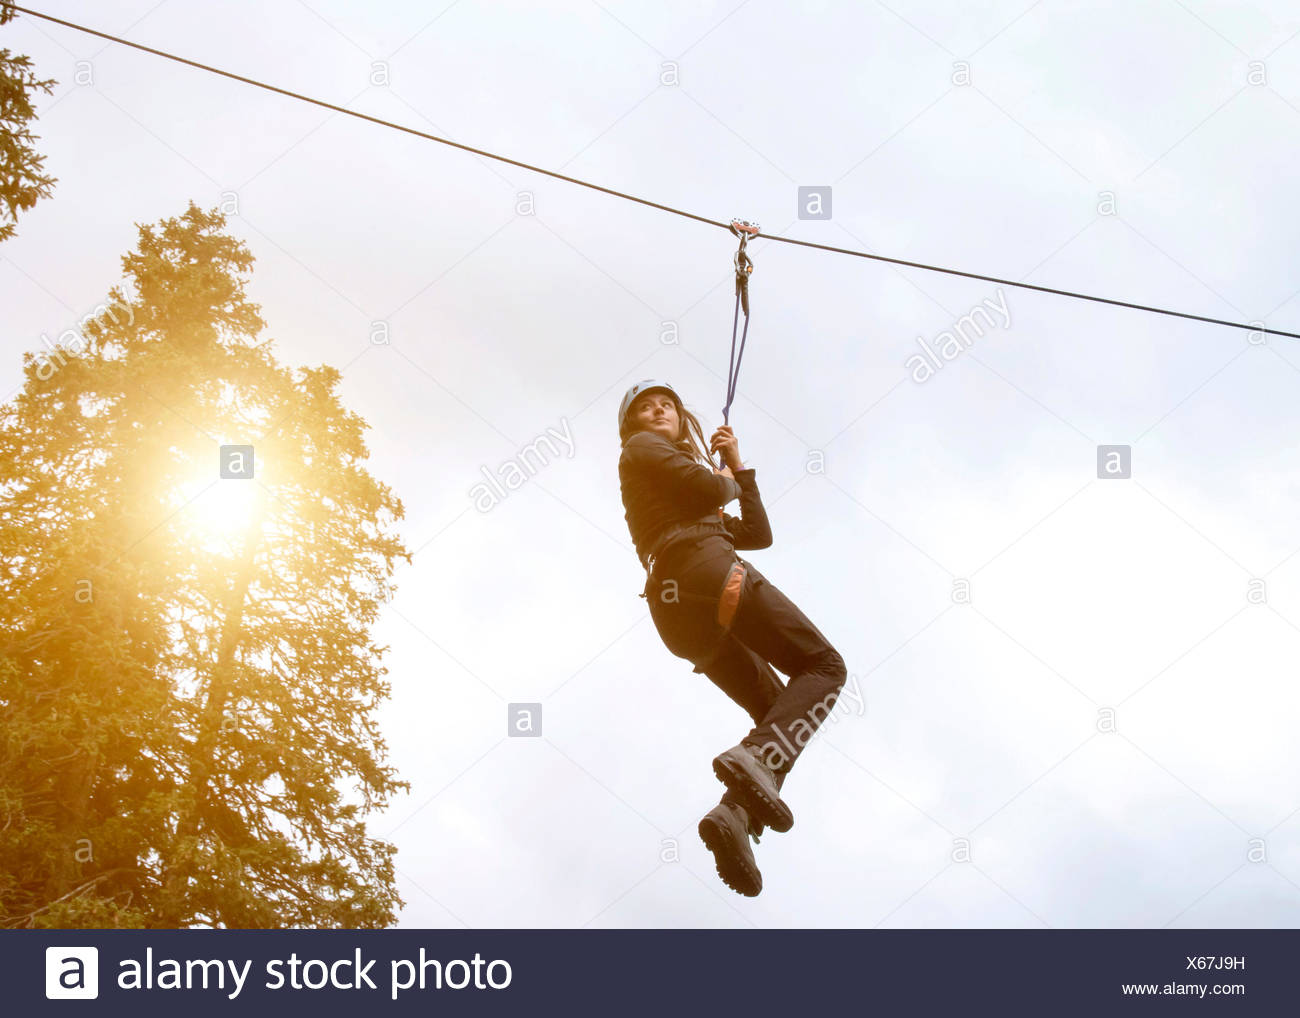 Teenage girl on zip wire - Stock Image